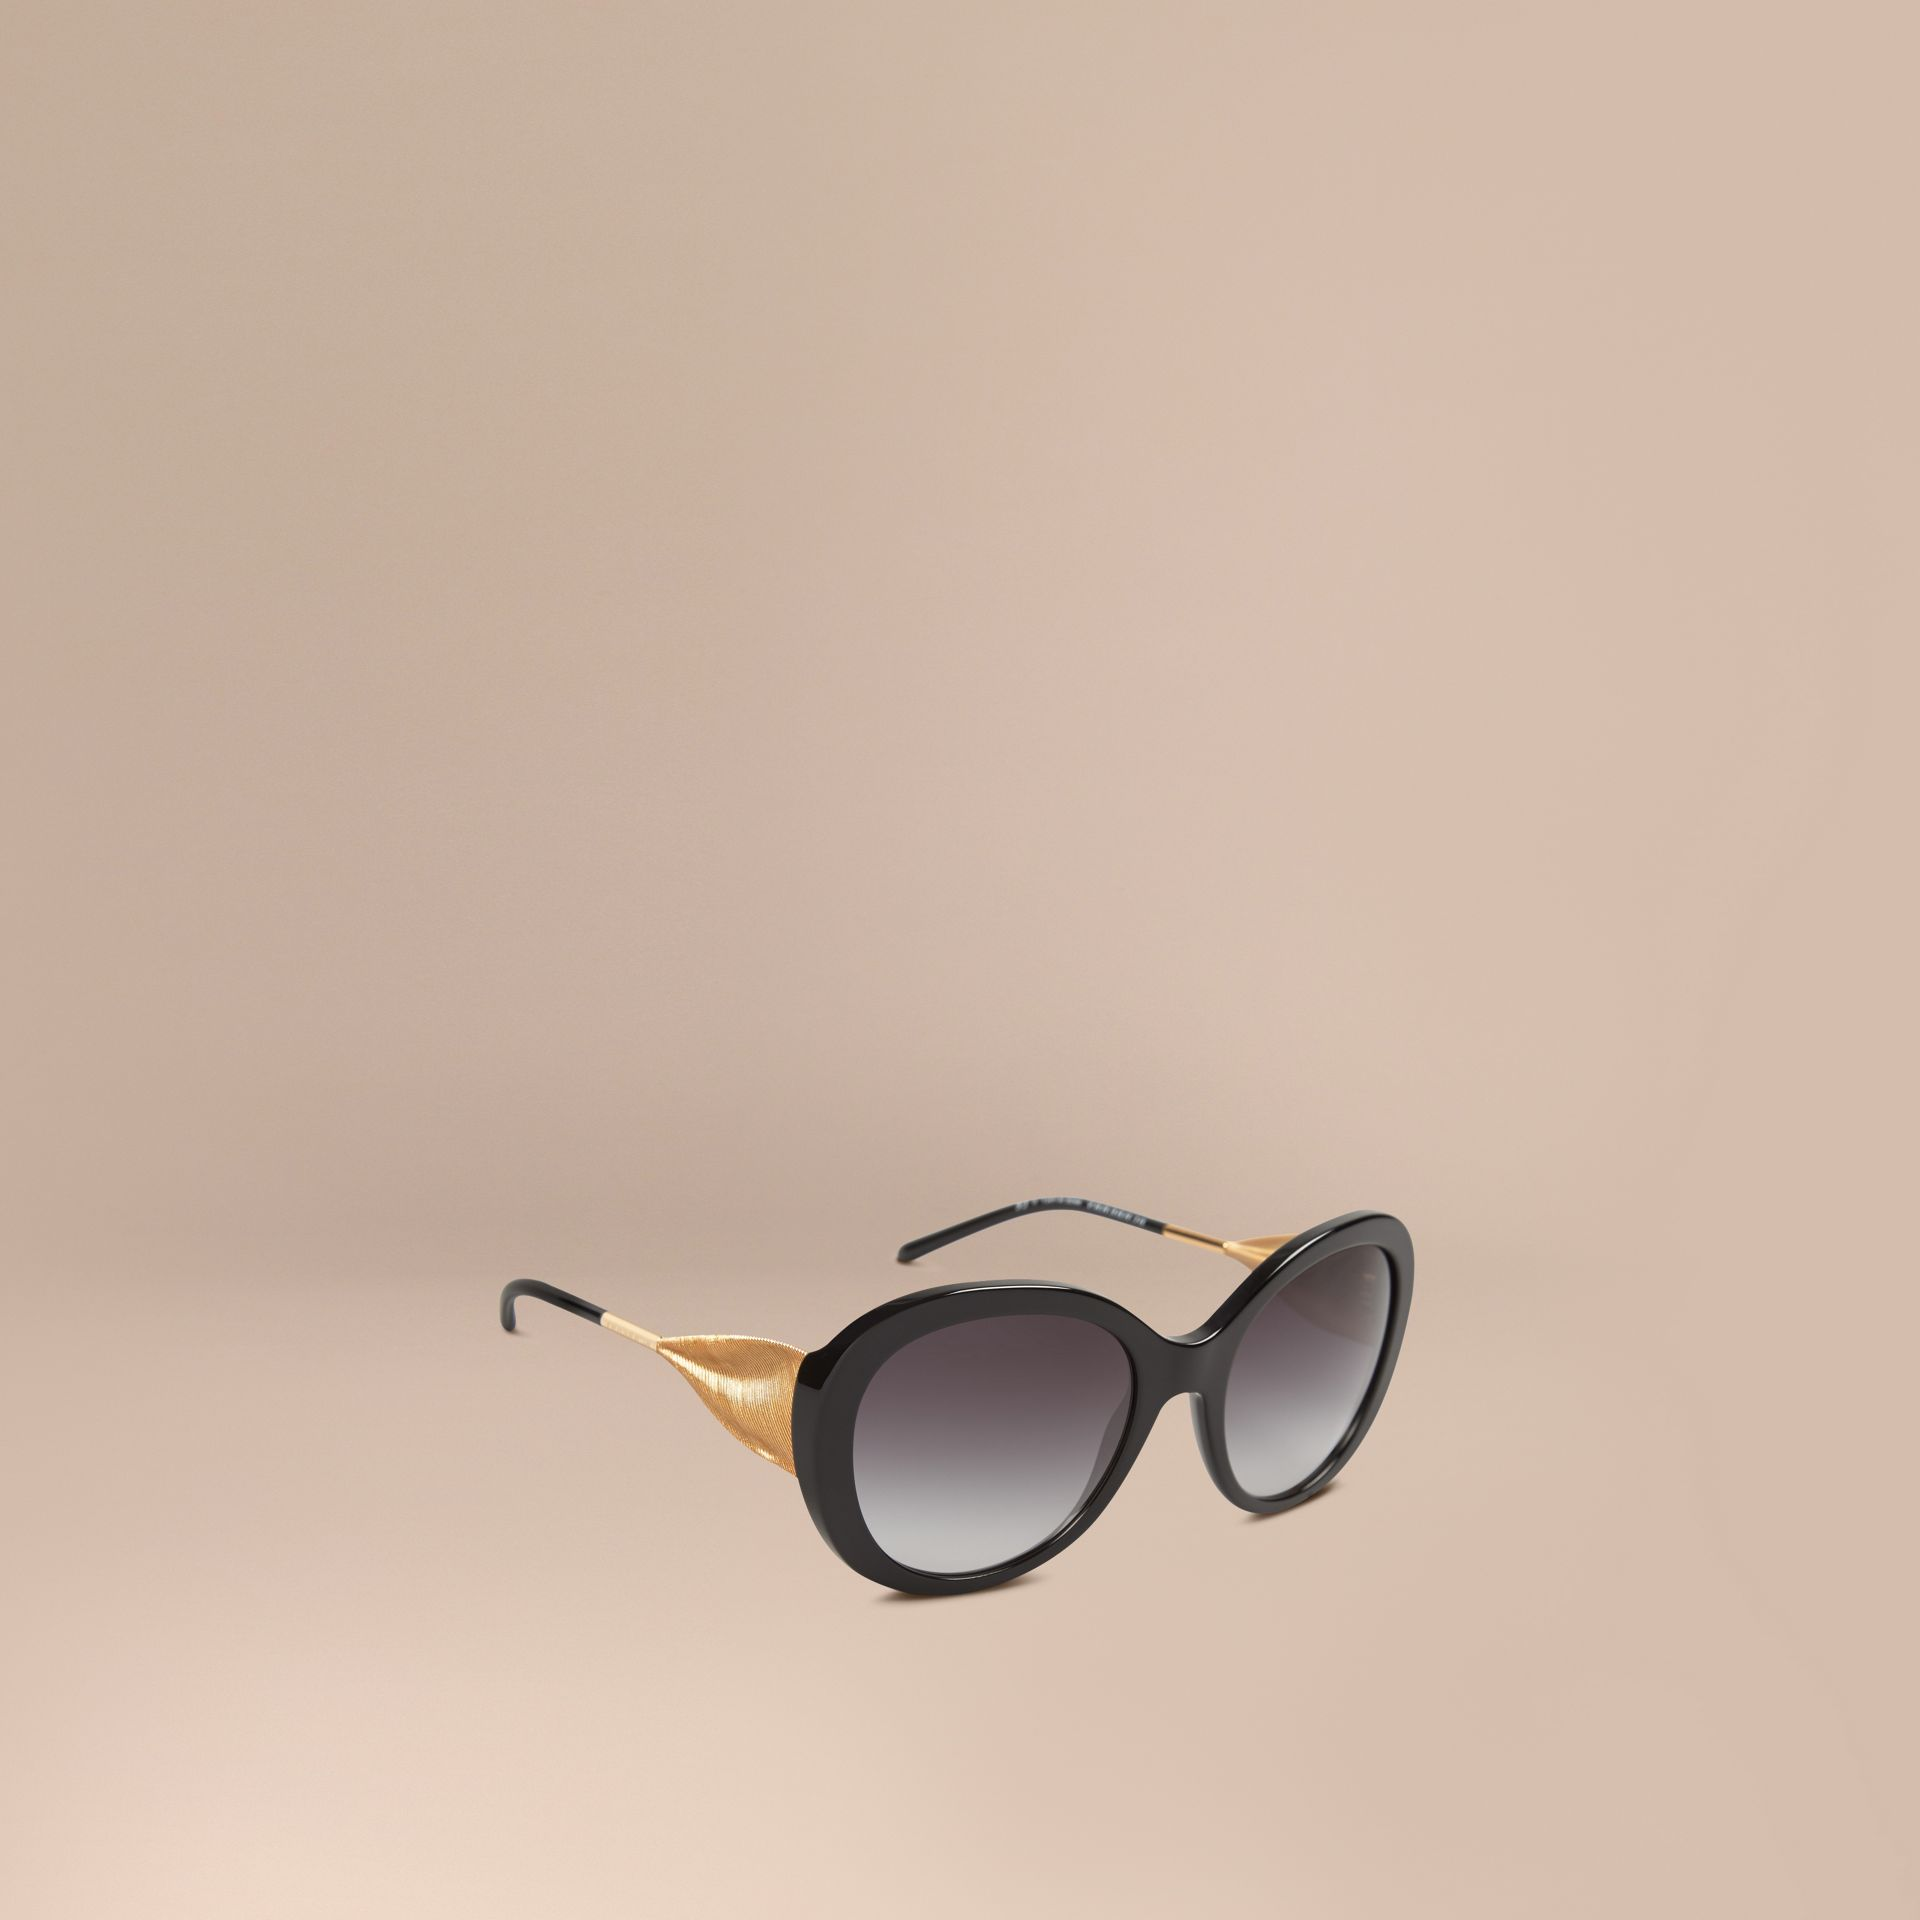 Oversize Round Frame Sunglasses in Black - Women | Burberry - gallery image 0